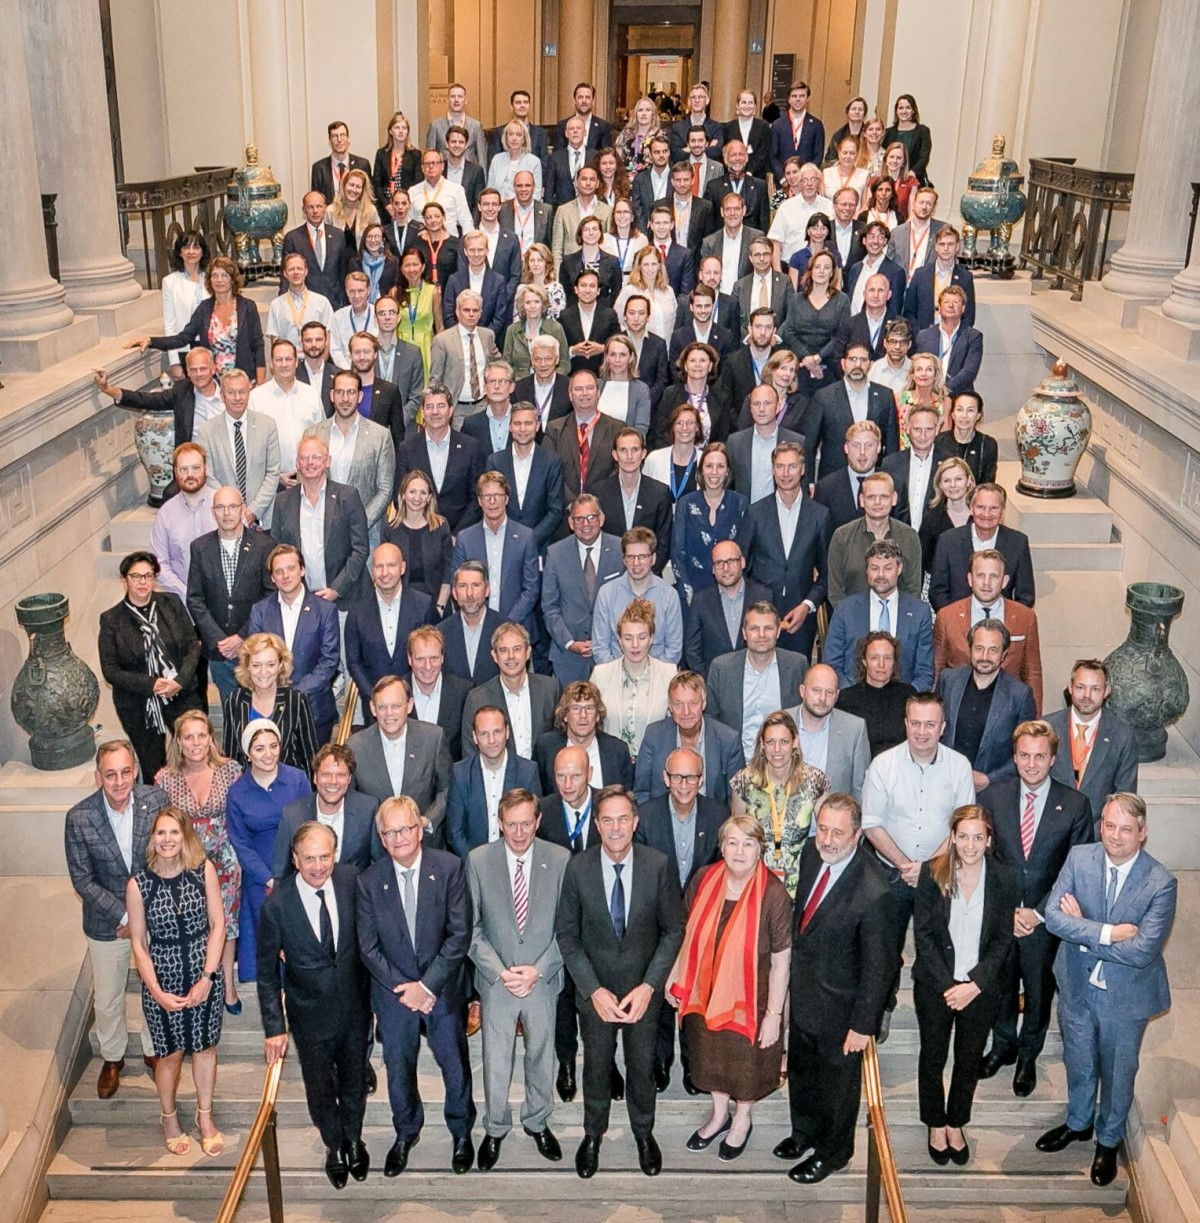 Holland Trade Mission Boston 2019 © Kyle Klein and the Embassy of the Kingdom of the Netherlands in the USA - Visit Prime Minister Mark Rutte to Boston, Massachusetts - Trade Mission AI & Robotics, Climate Resilience, Life Sciences & Health - July 17-18-19, 2019